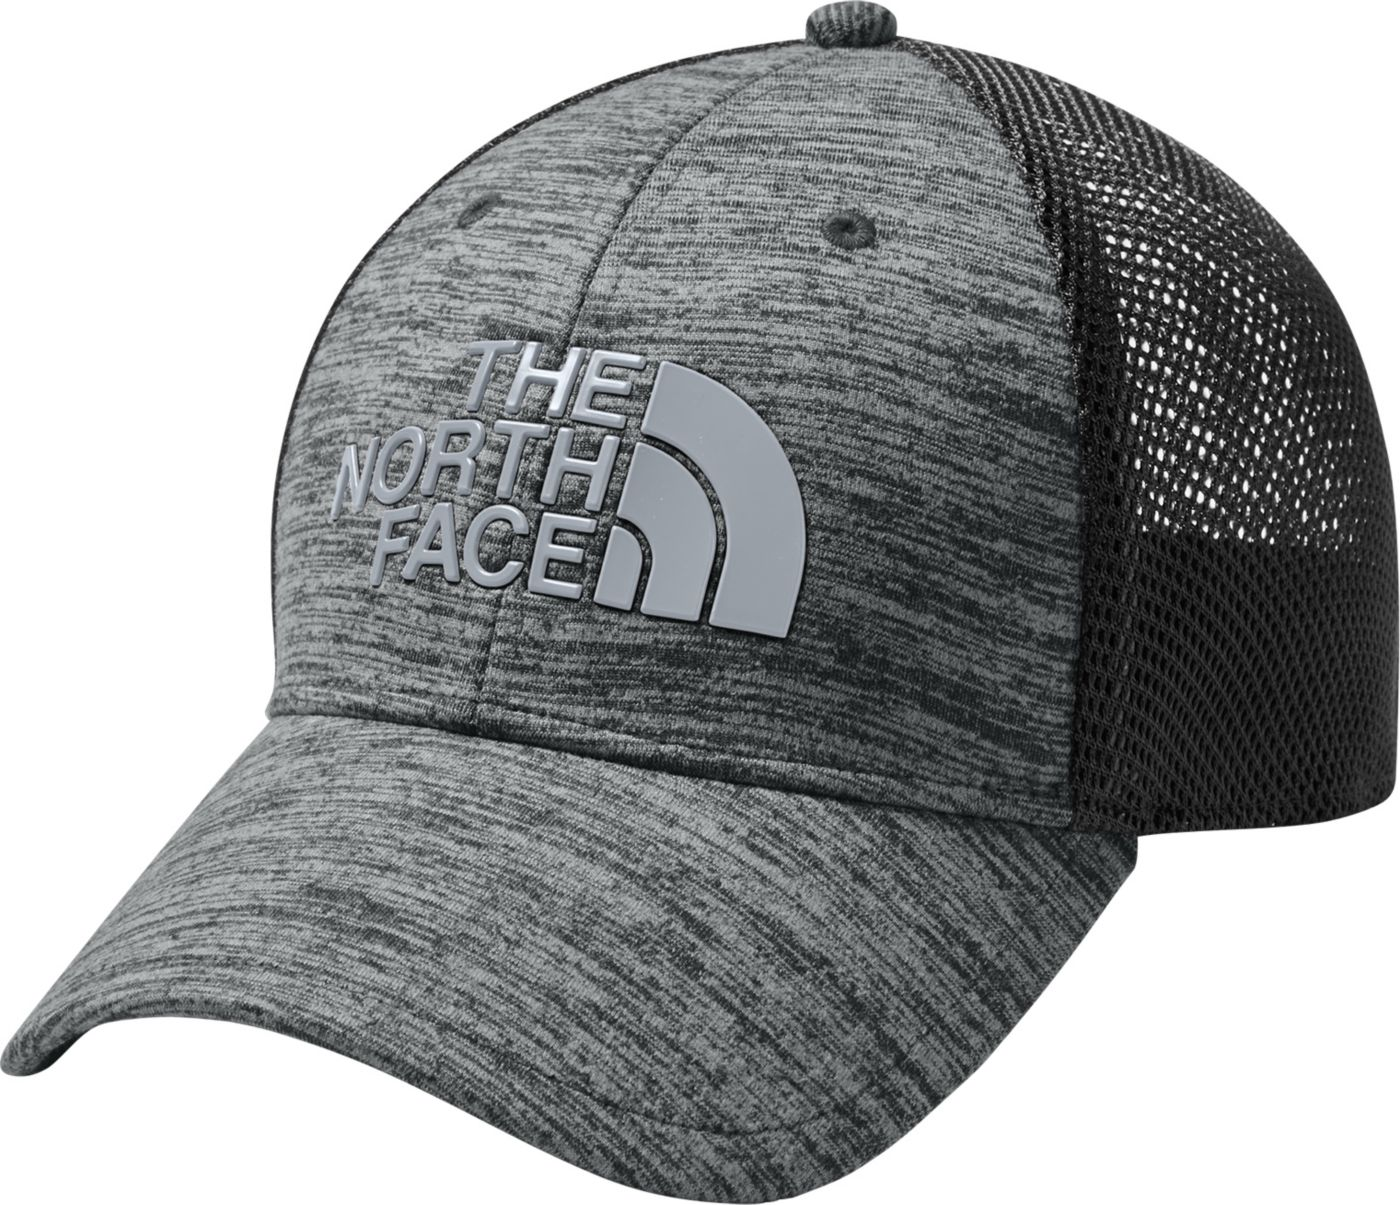 The North Face Men's One Touch Lite Trucker Hat